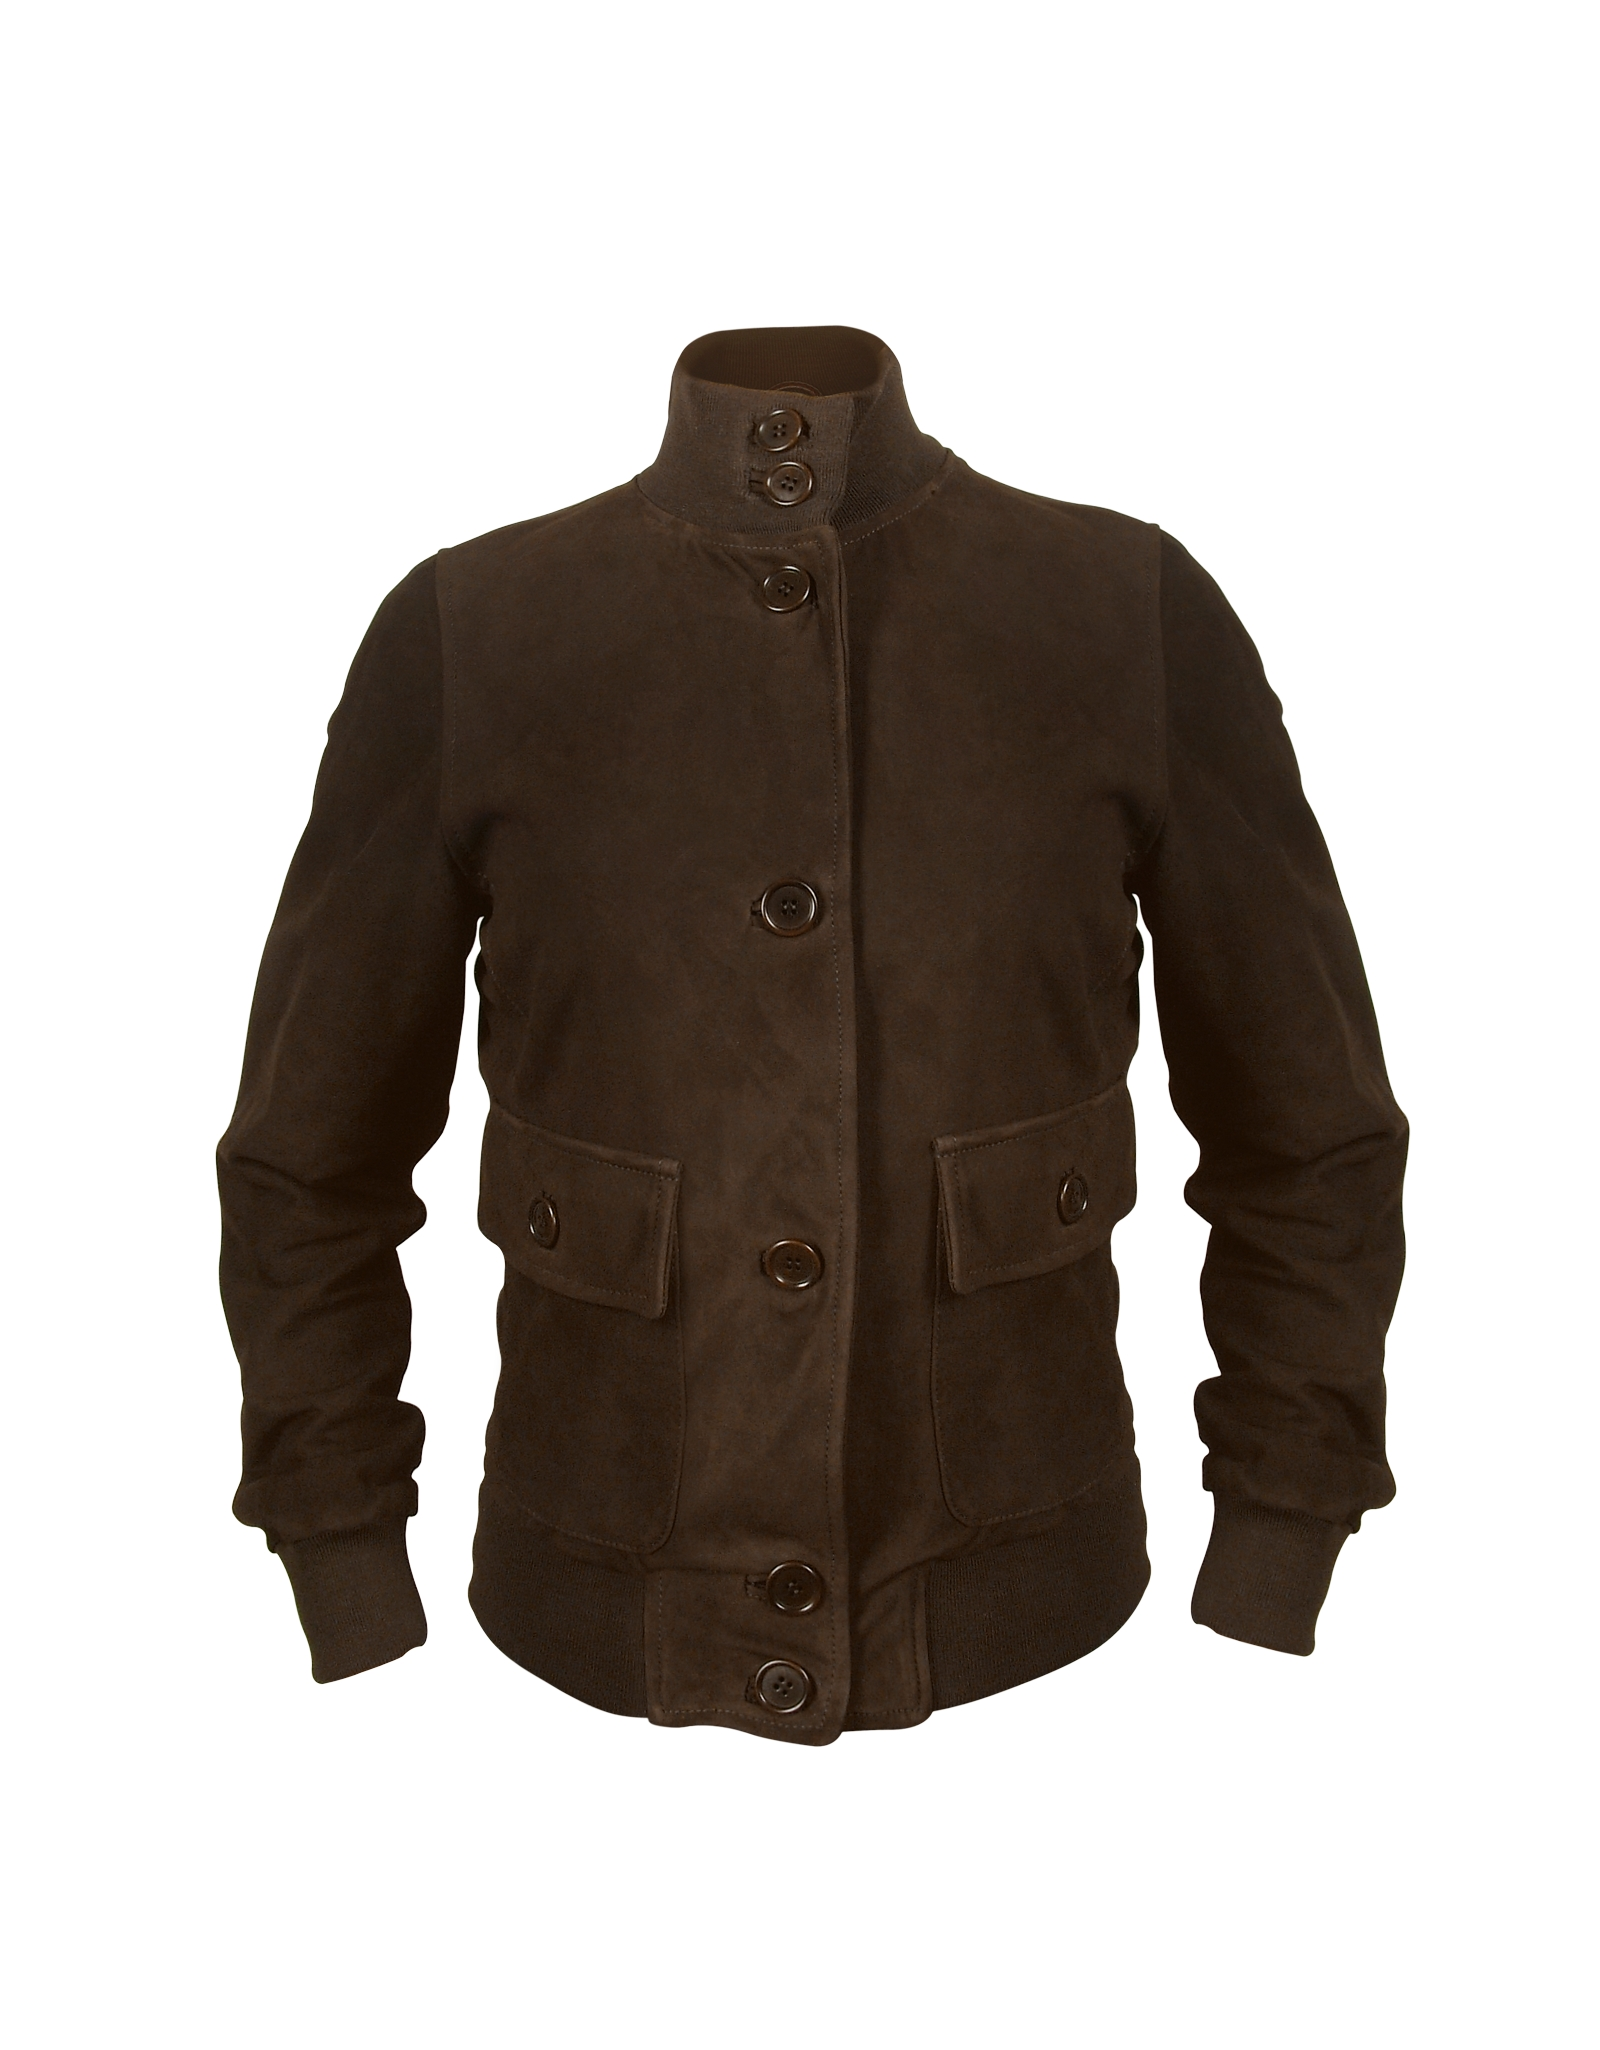 Jackets, brown shoes and other clothing made of suede are much more fragile and difficult to clean than non-suede leathers. If you're wondering why your brown suede jacket gets dirtier faster than other jackets in your wardrobe, it's because that suede tends to absorb stains.